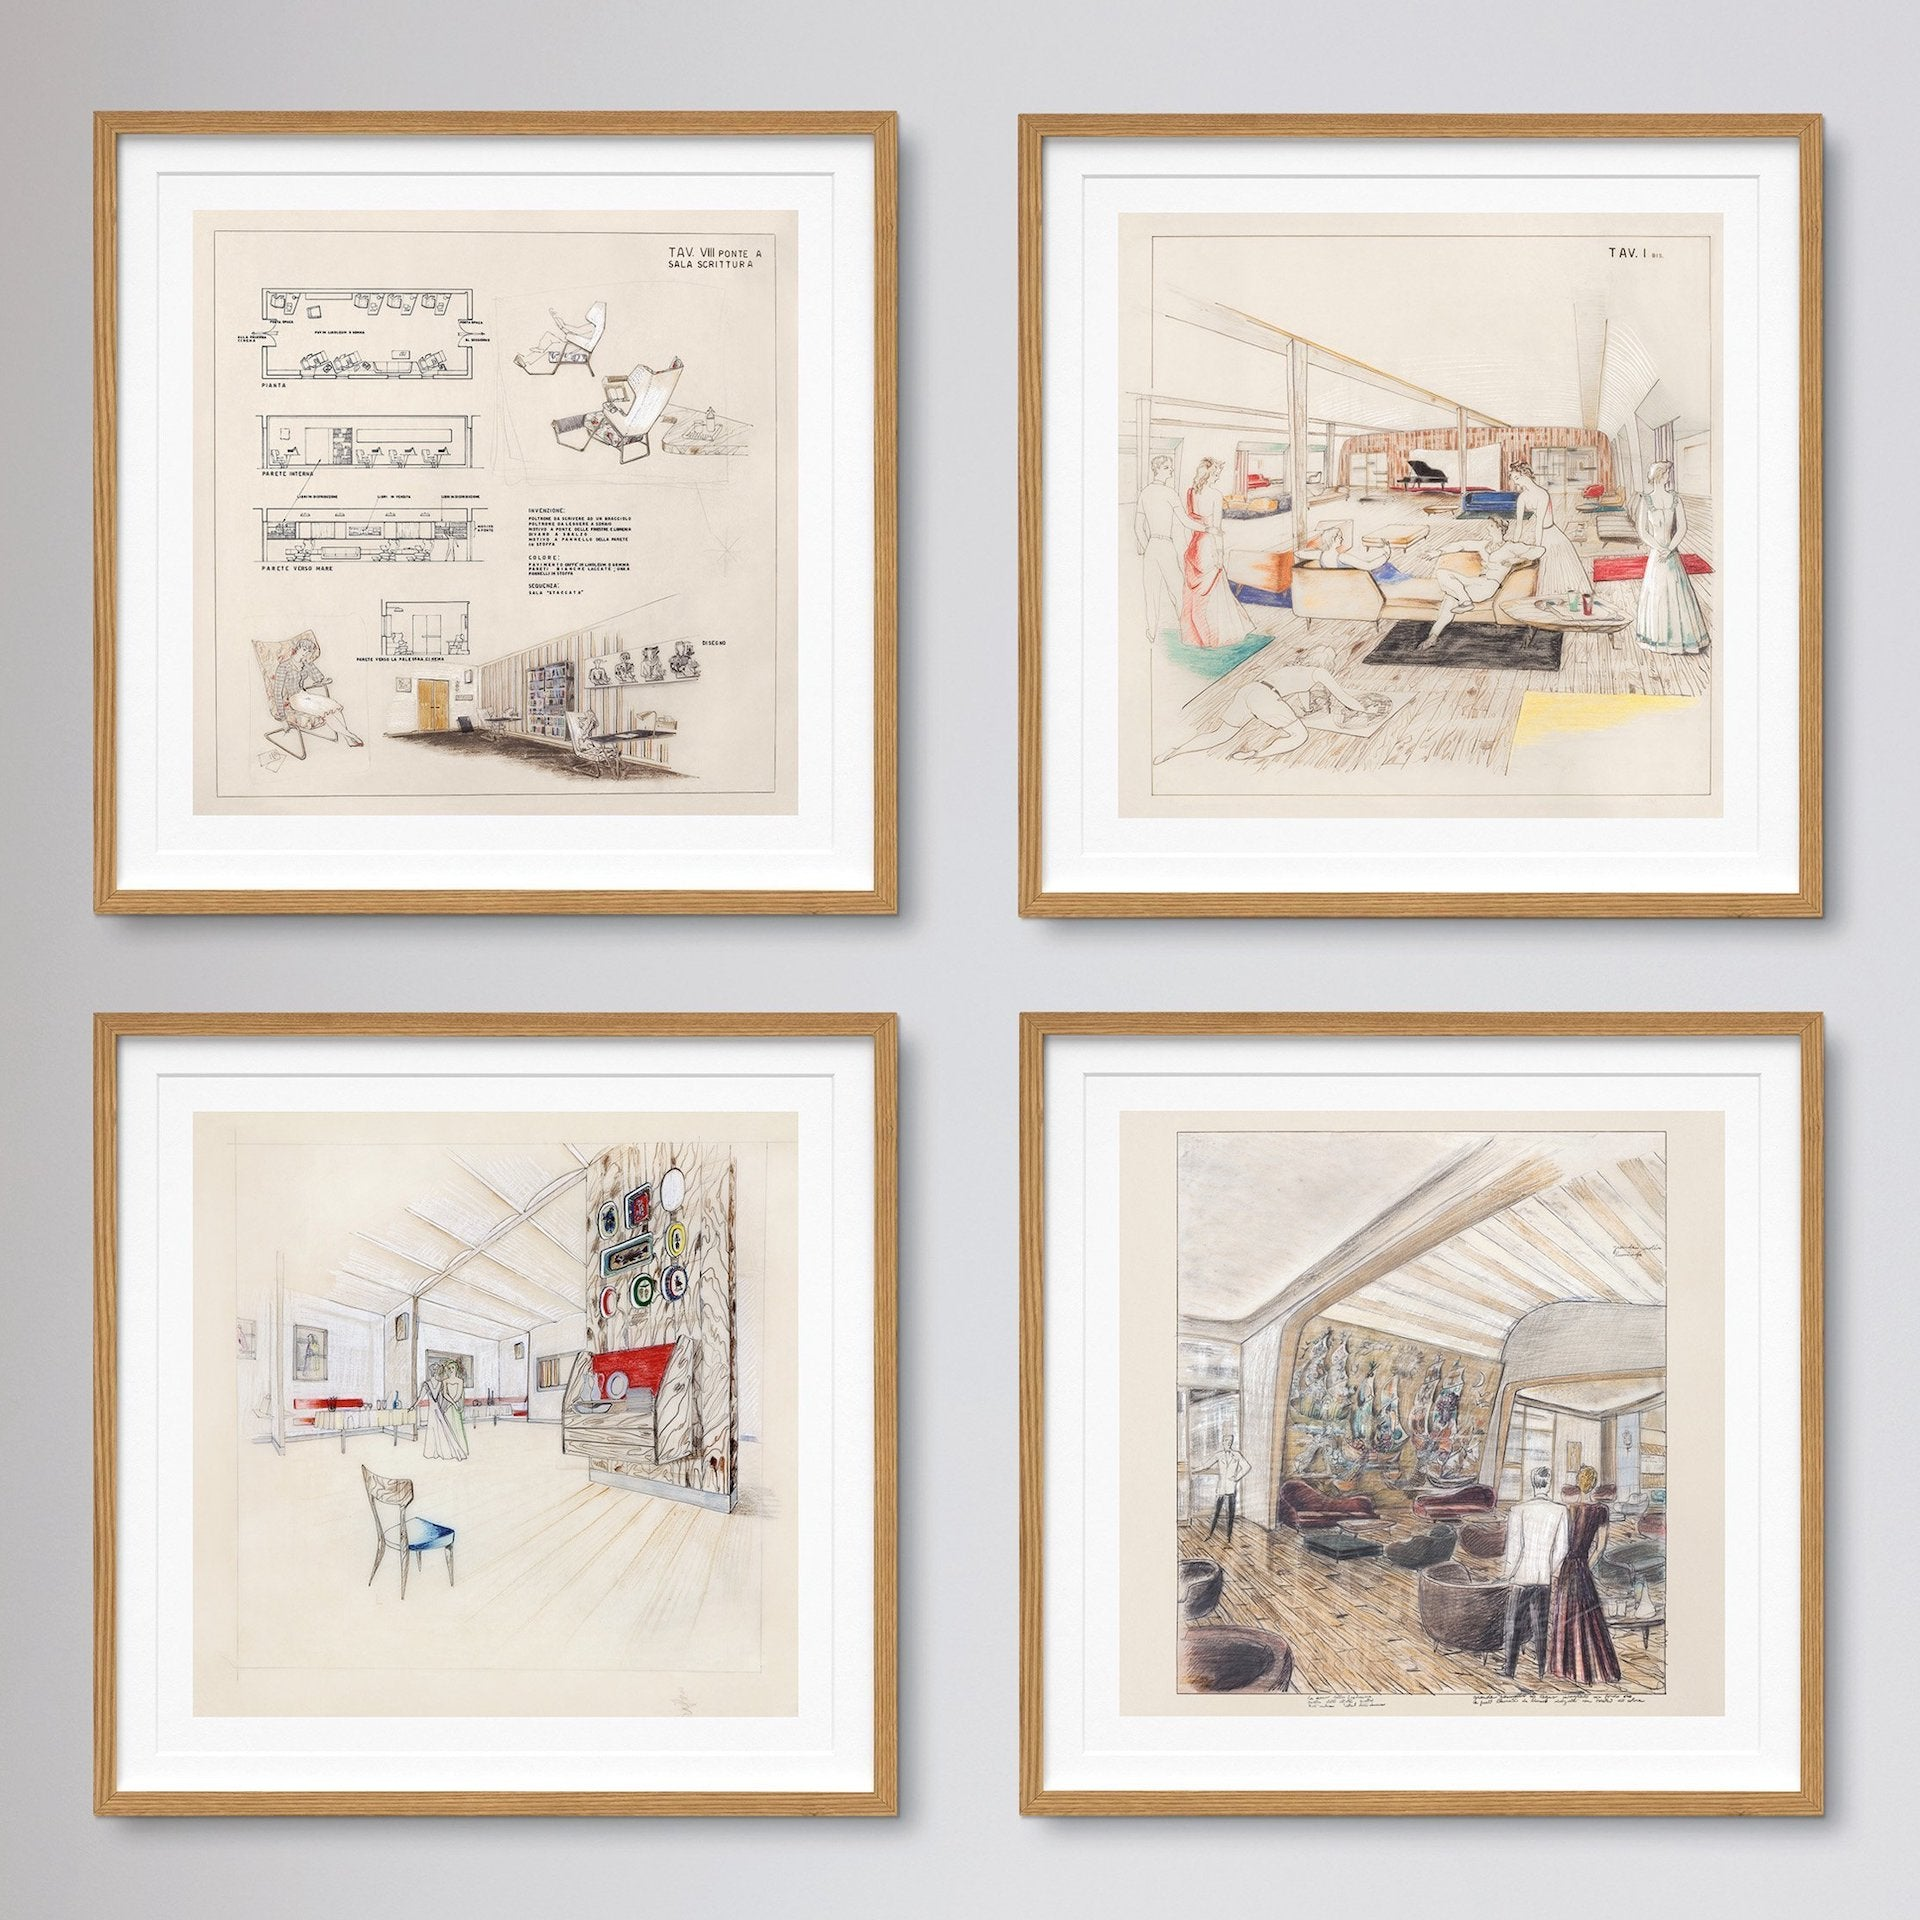 Set of prints offered with the art edition Gio Ponti, available in July. Photo © Taschen